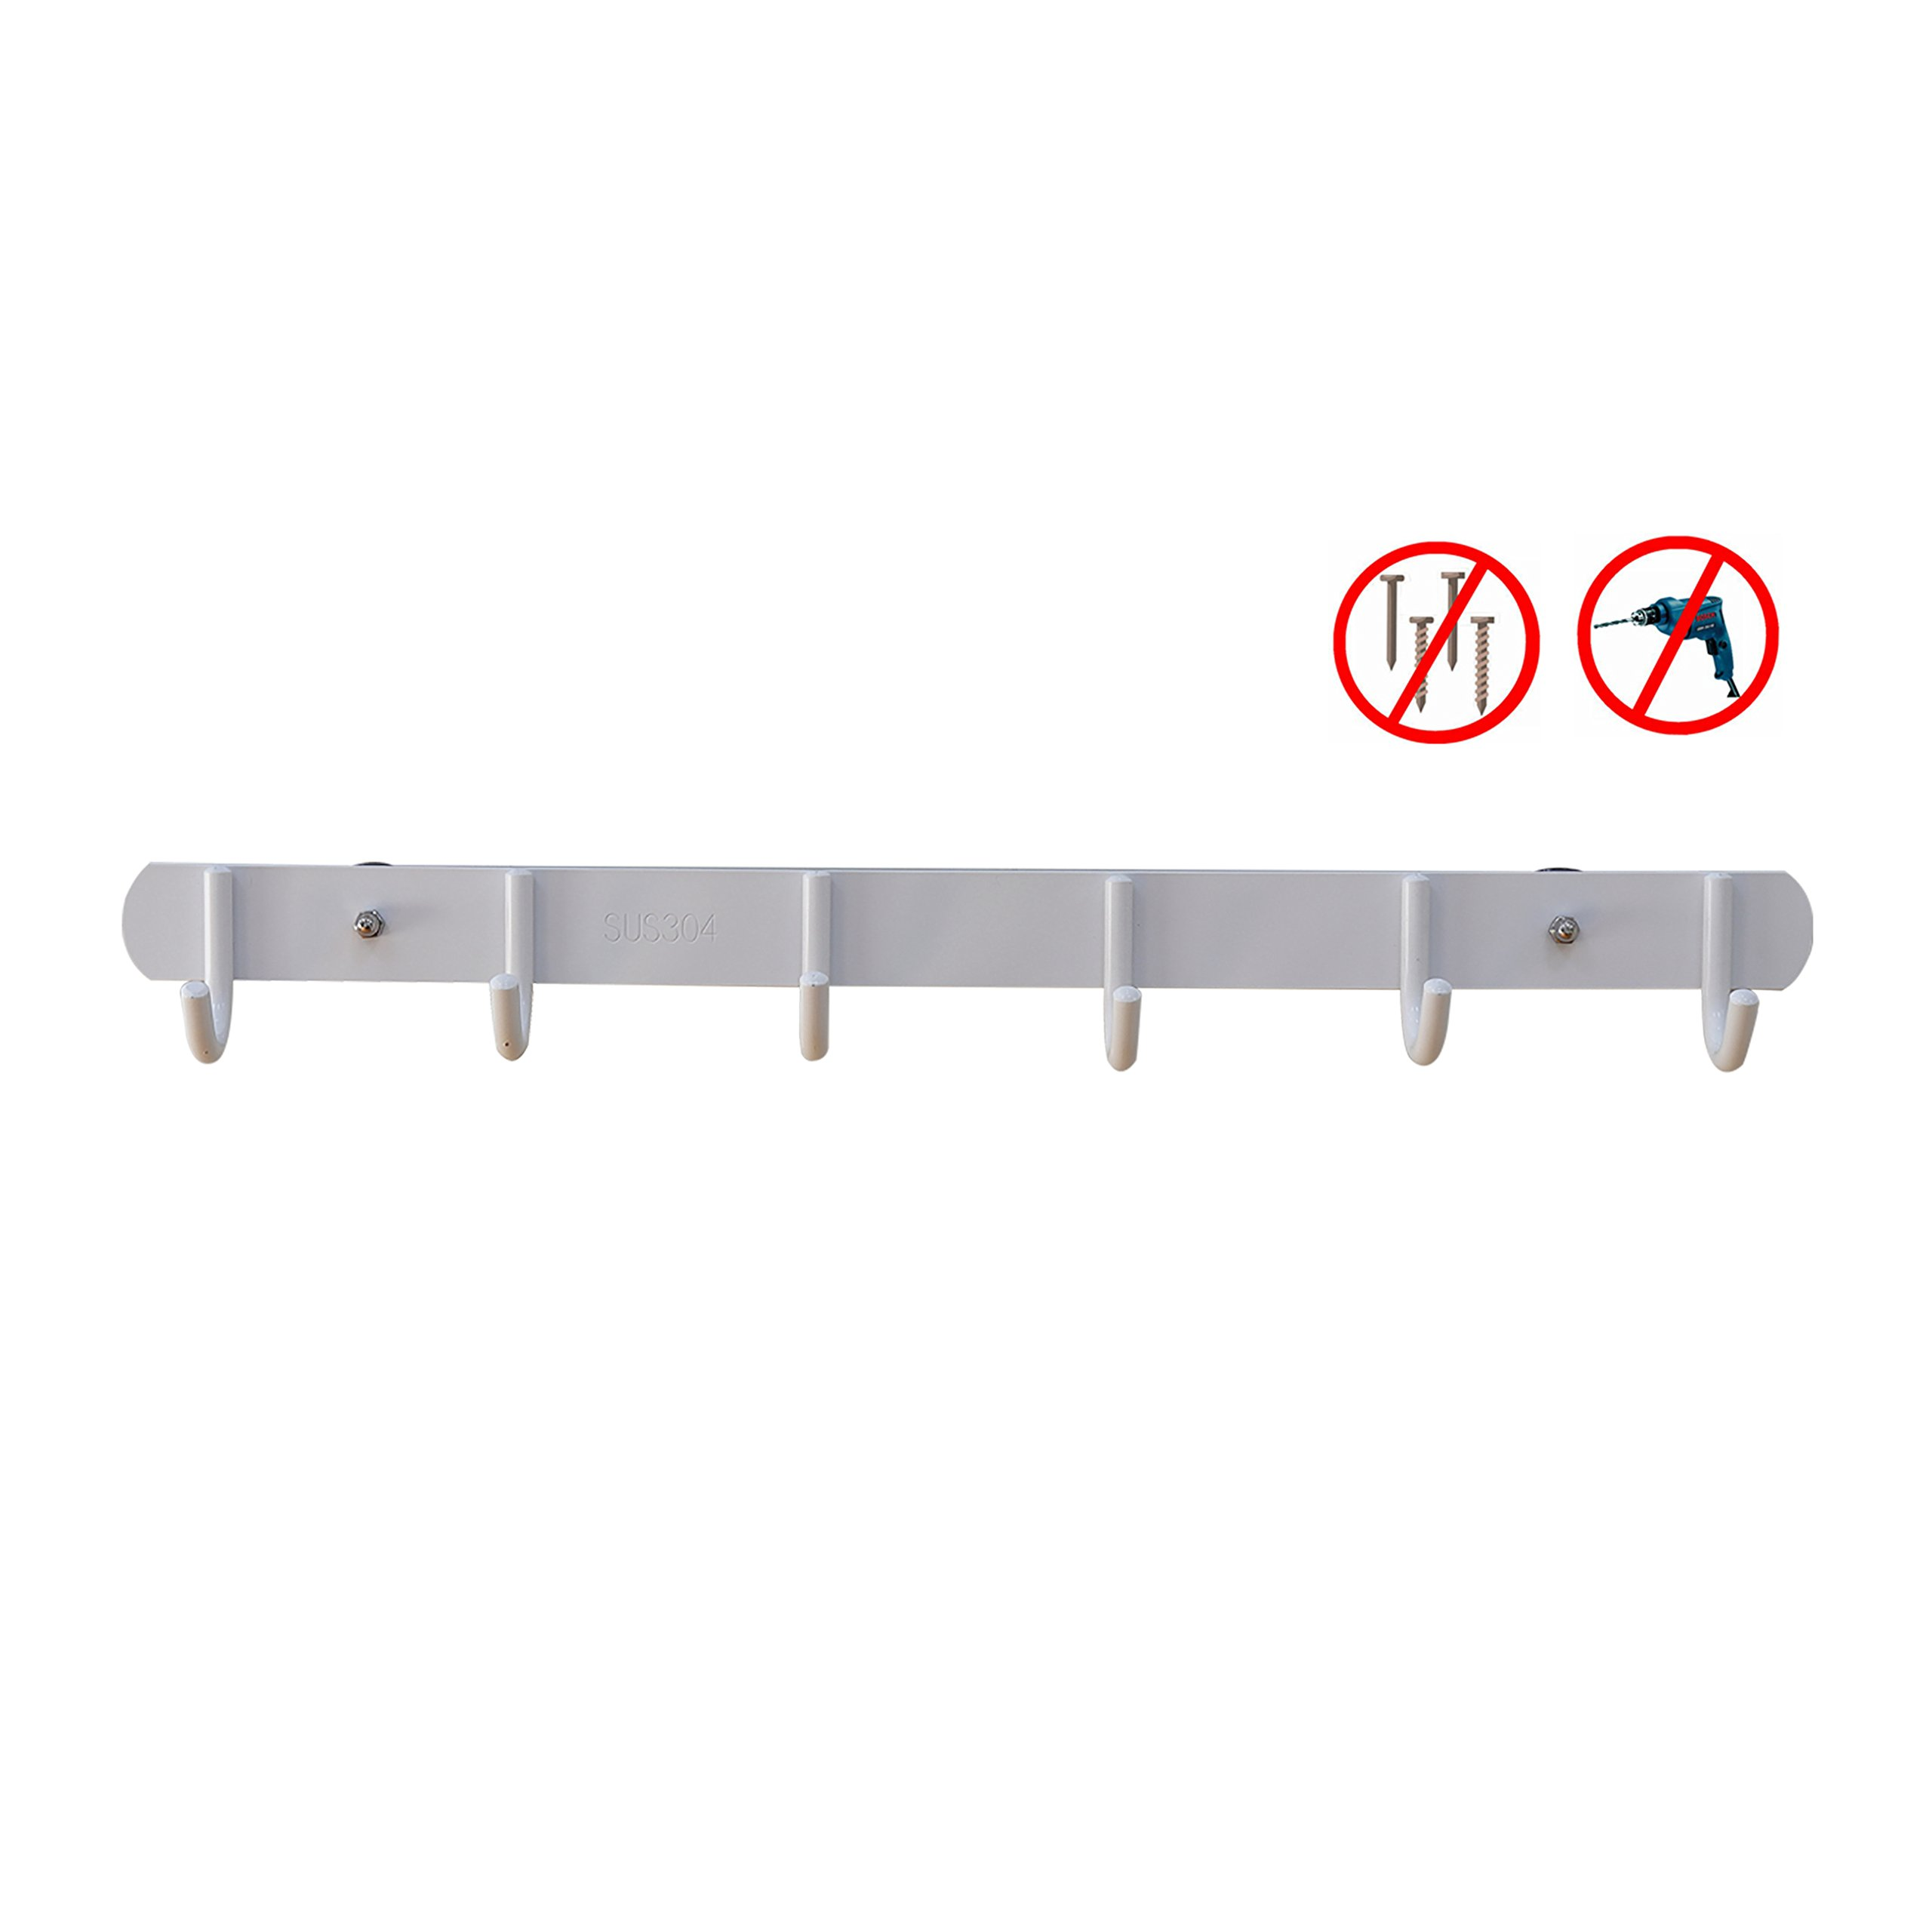 EINFAGOOD Over the Door Hooks Stainless, Coat Rack children with Magic Adhesive Pads, Adjustable According to Your Child's Growth, Stainless Steel White